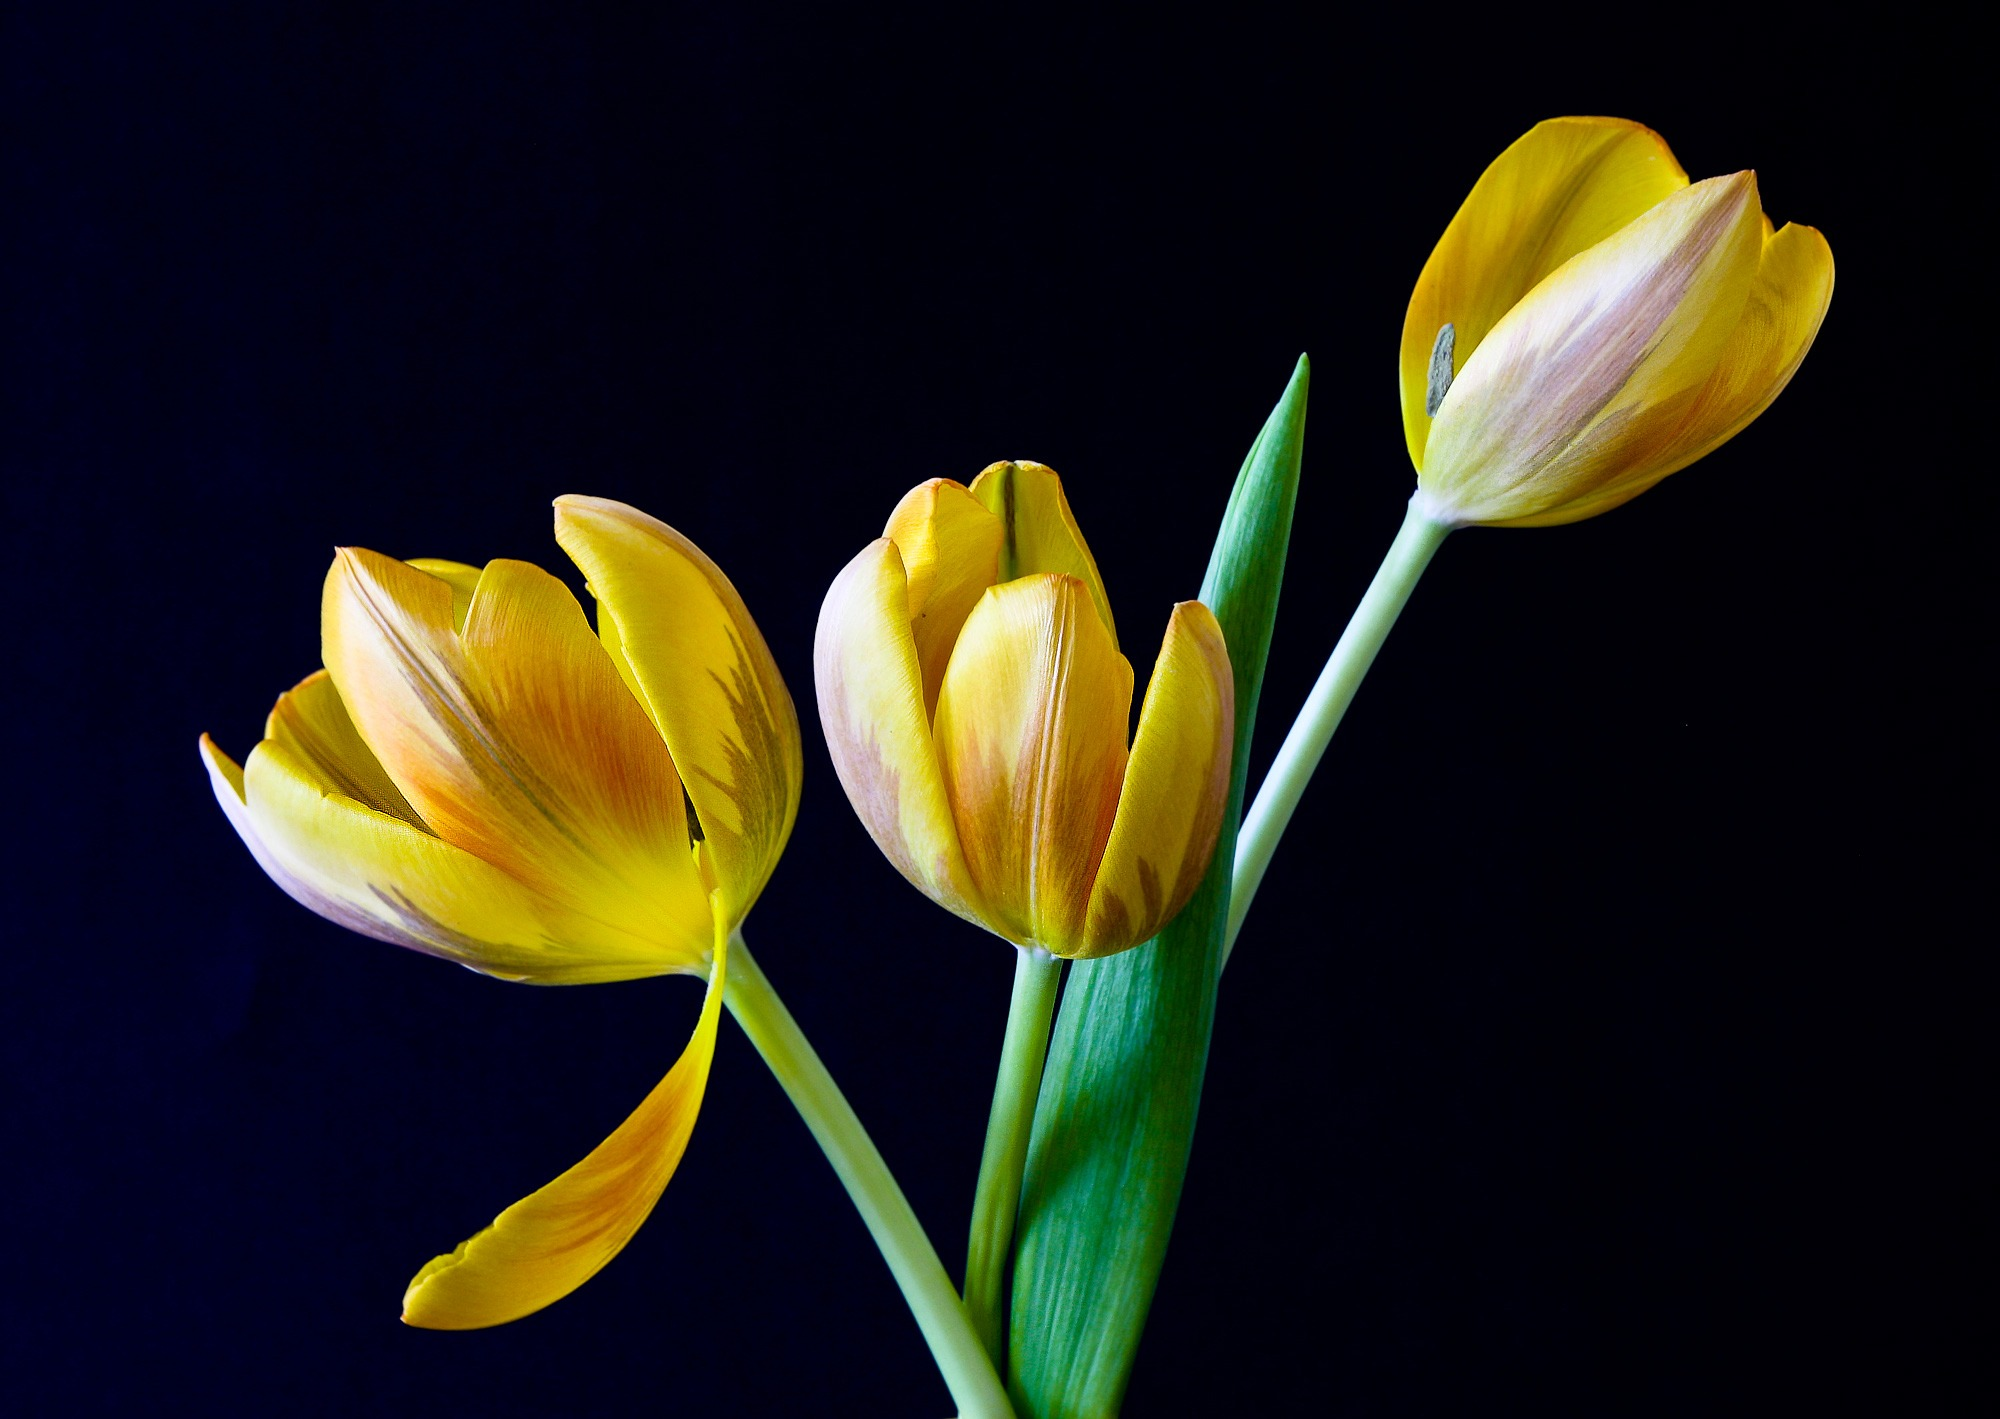 tulip flower Tulip definition, any of various plants belonging to the genus tulipa, of the lily family, cultivated in many varieties, and having lance-shaped leaves and large, showy, usually erect, cup-shaped or bell-shaped flowers in a variety of colors.